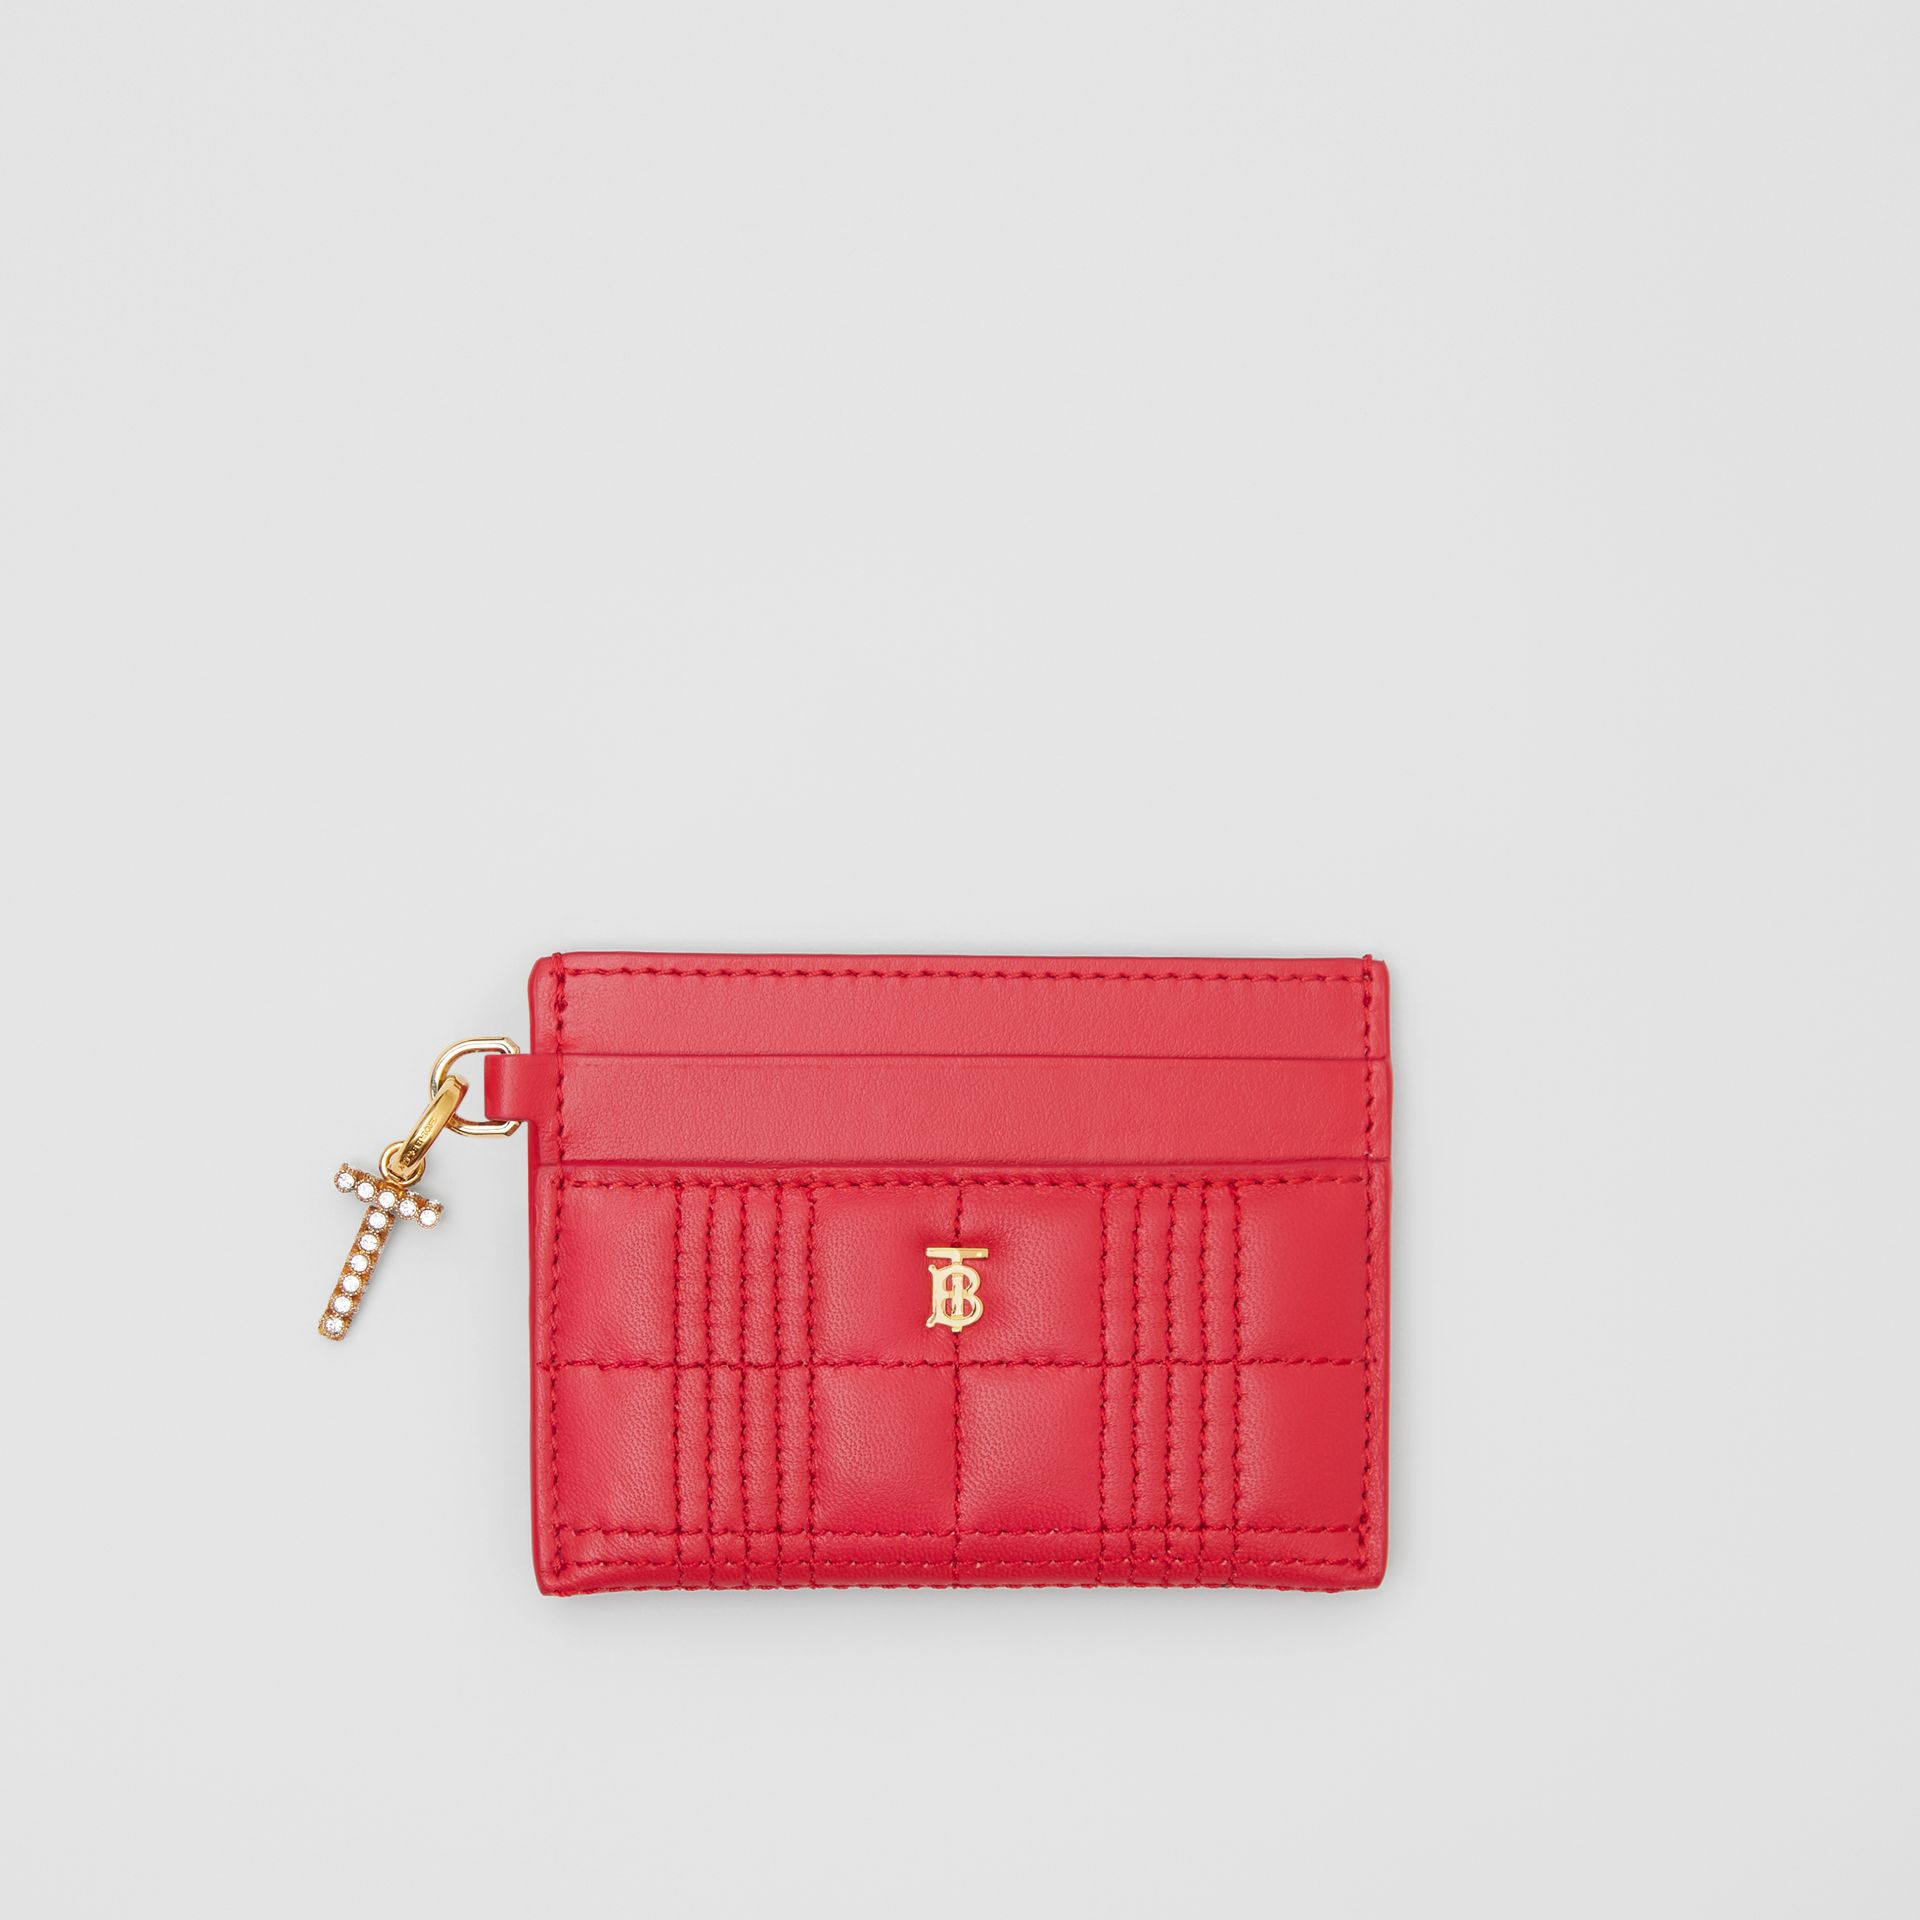 Monogram Motif Quilted Lambskin Card Case in Bright Red - Women | Burberry Hong Kong S.A.R - gallery image 5